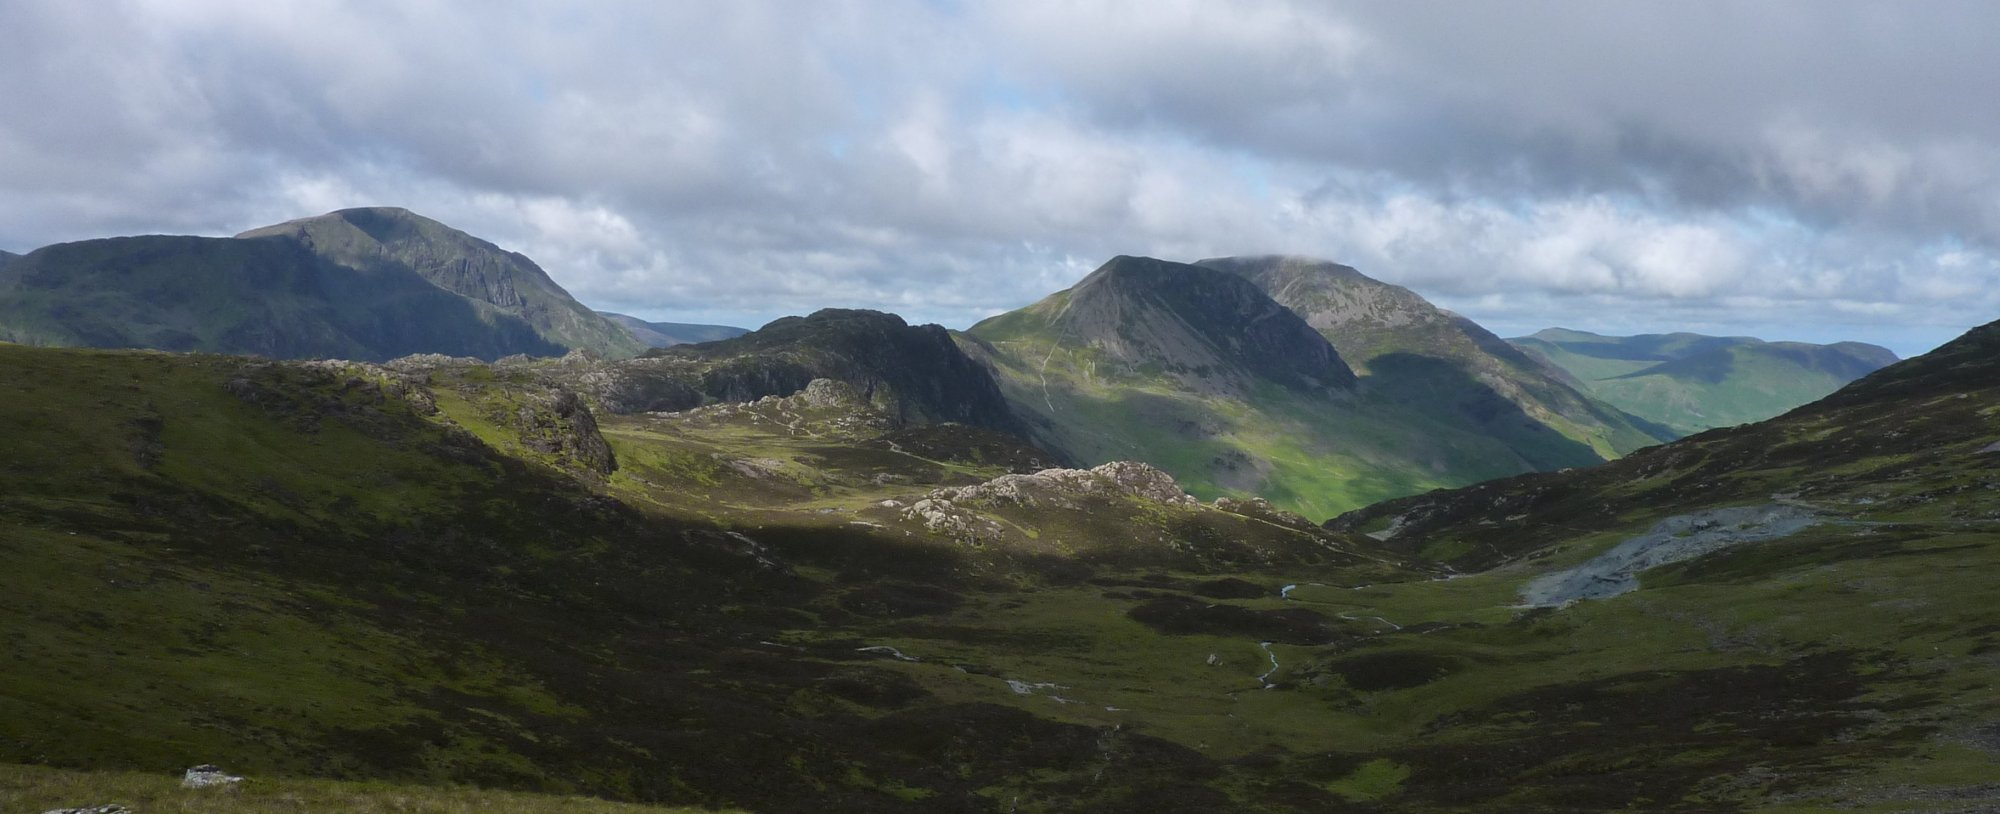 Haystacks and the High Stile range